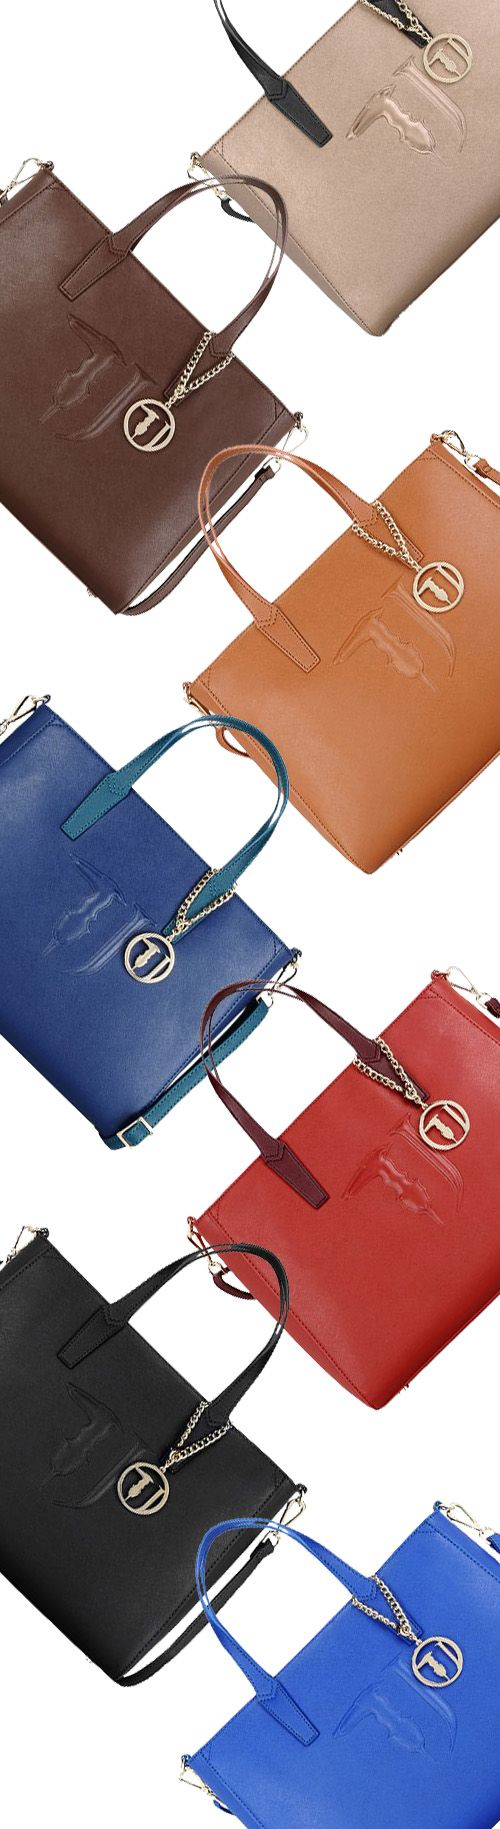 Discover the TRUSSARDI JEANS Bags collection: bit.ly/TJ_Bag